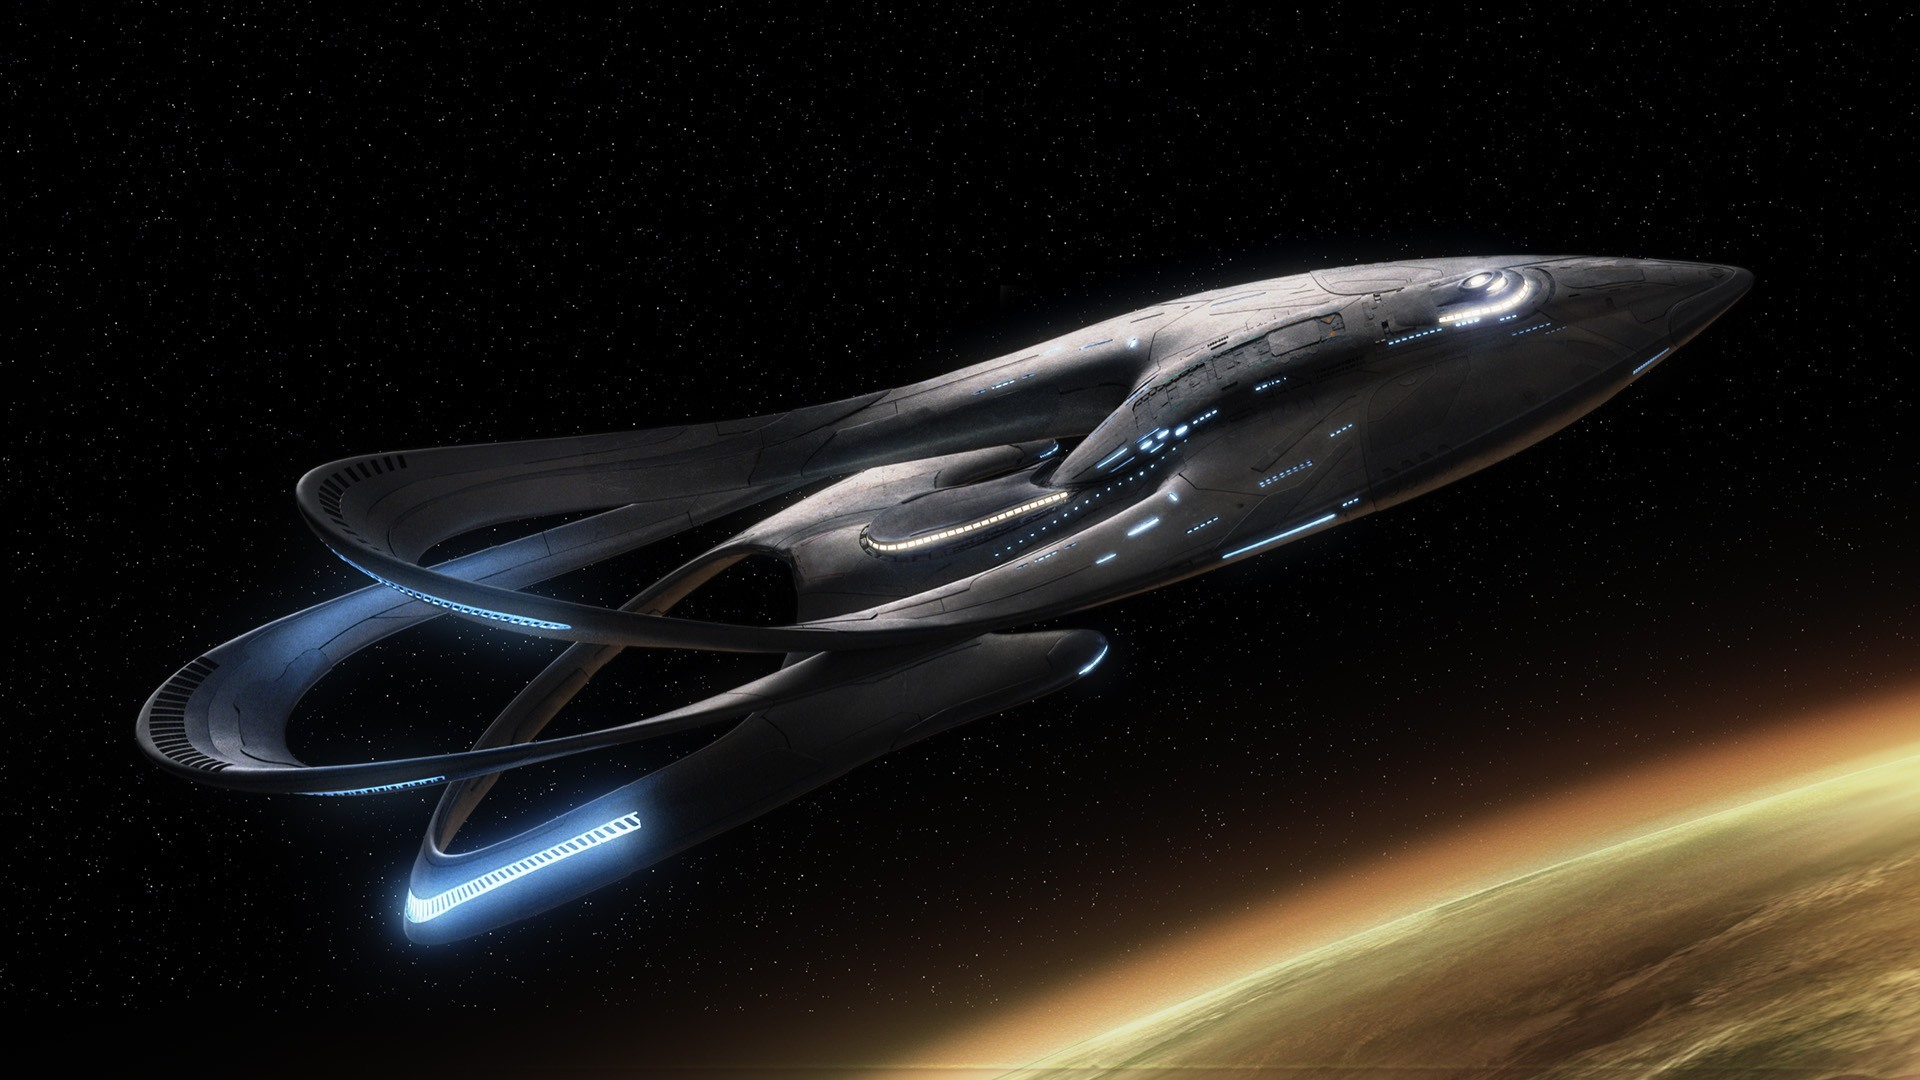 The Orville ship